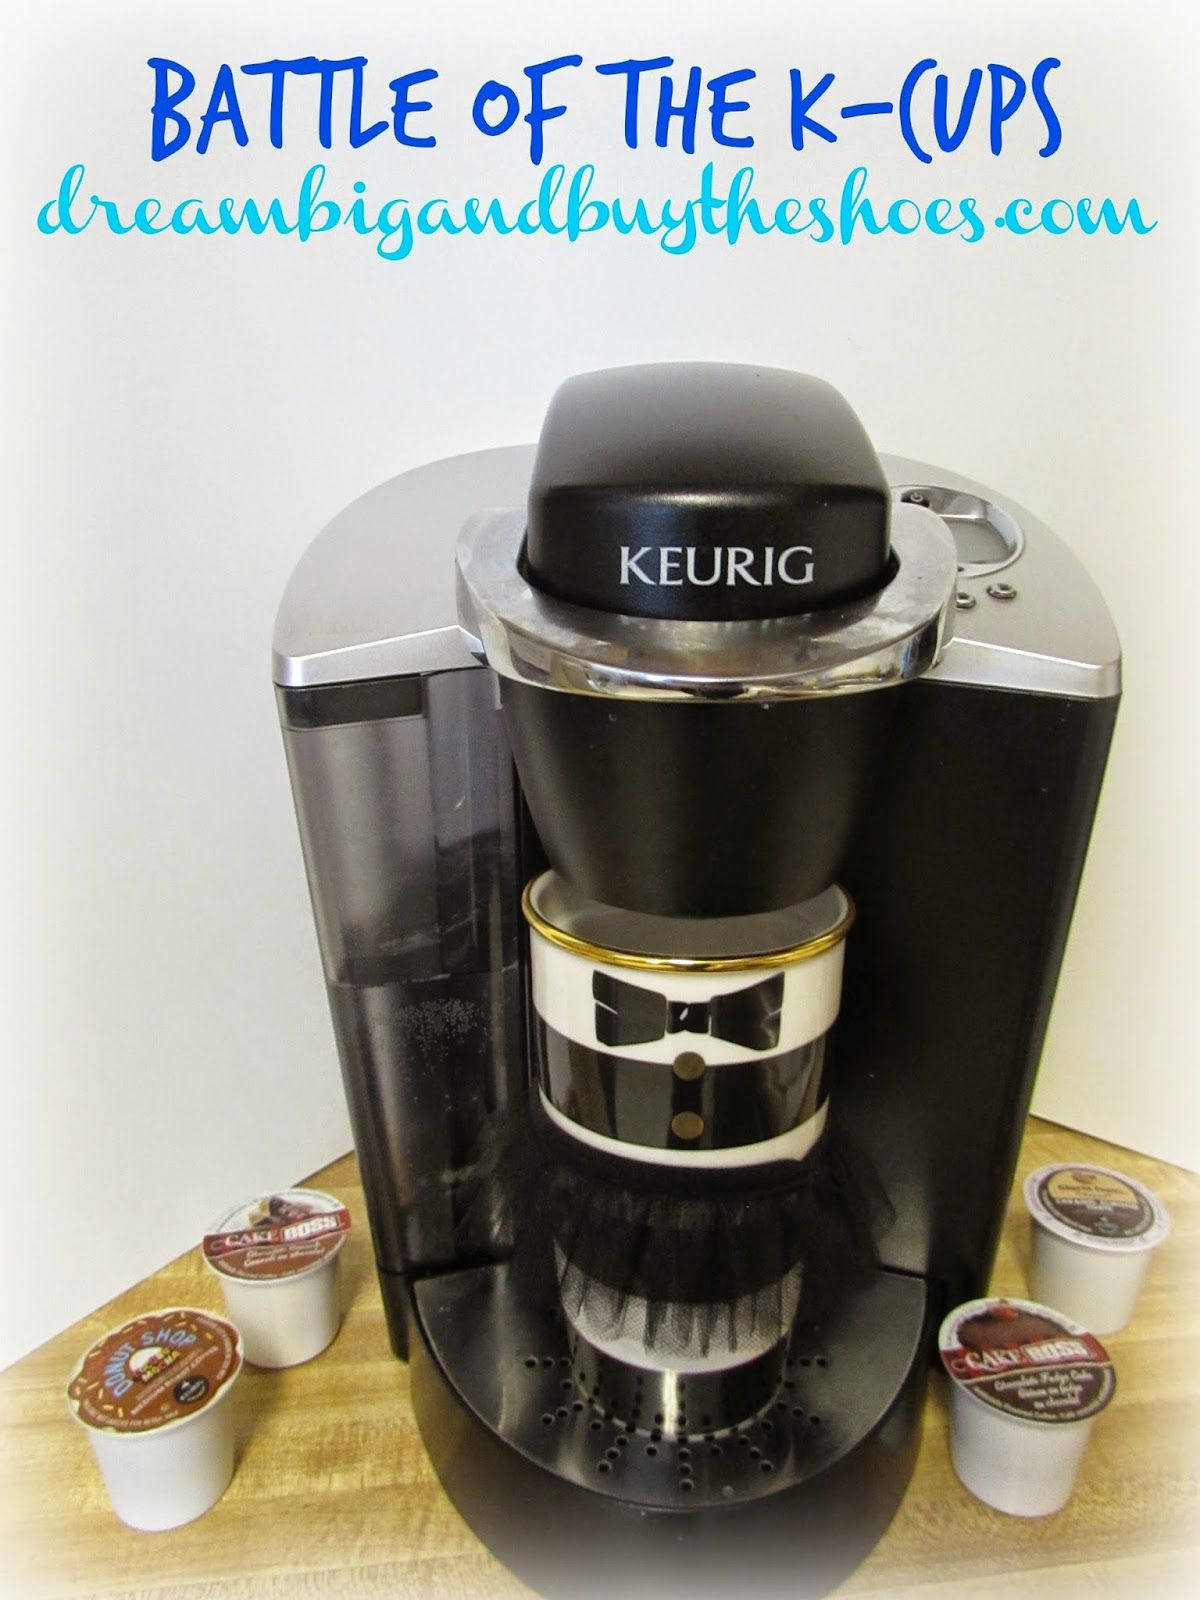 Battle of the kcups k cups cup keurig